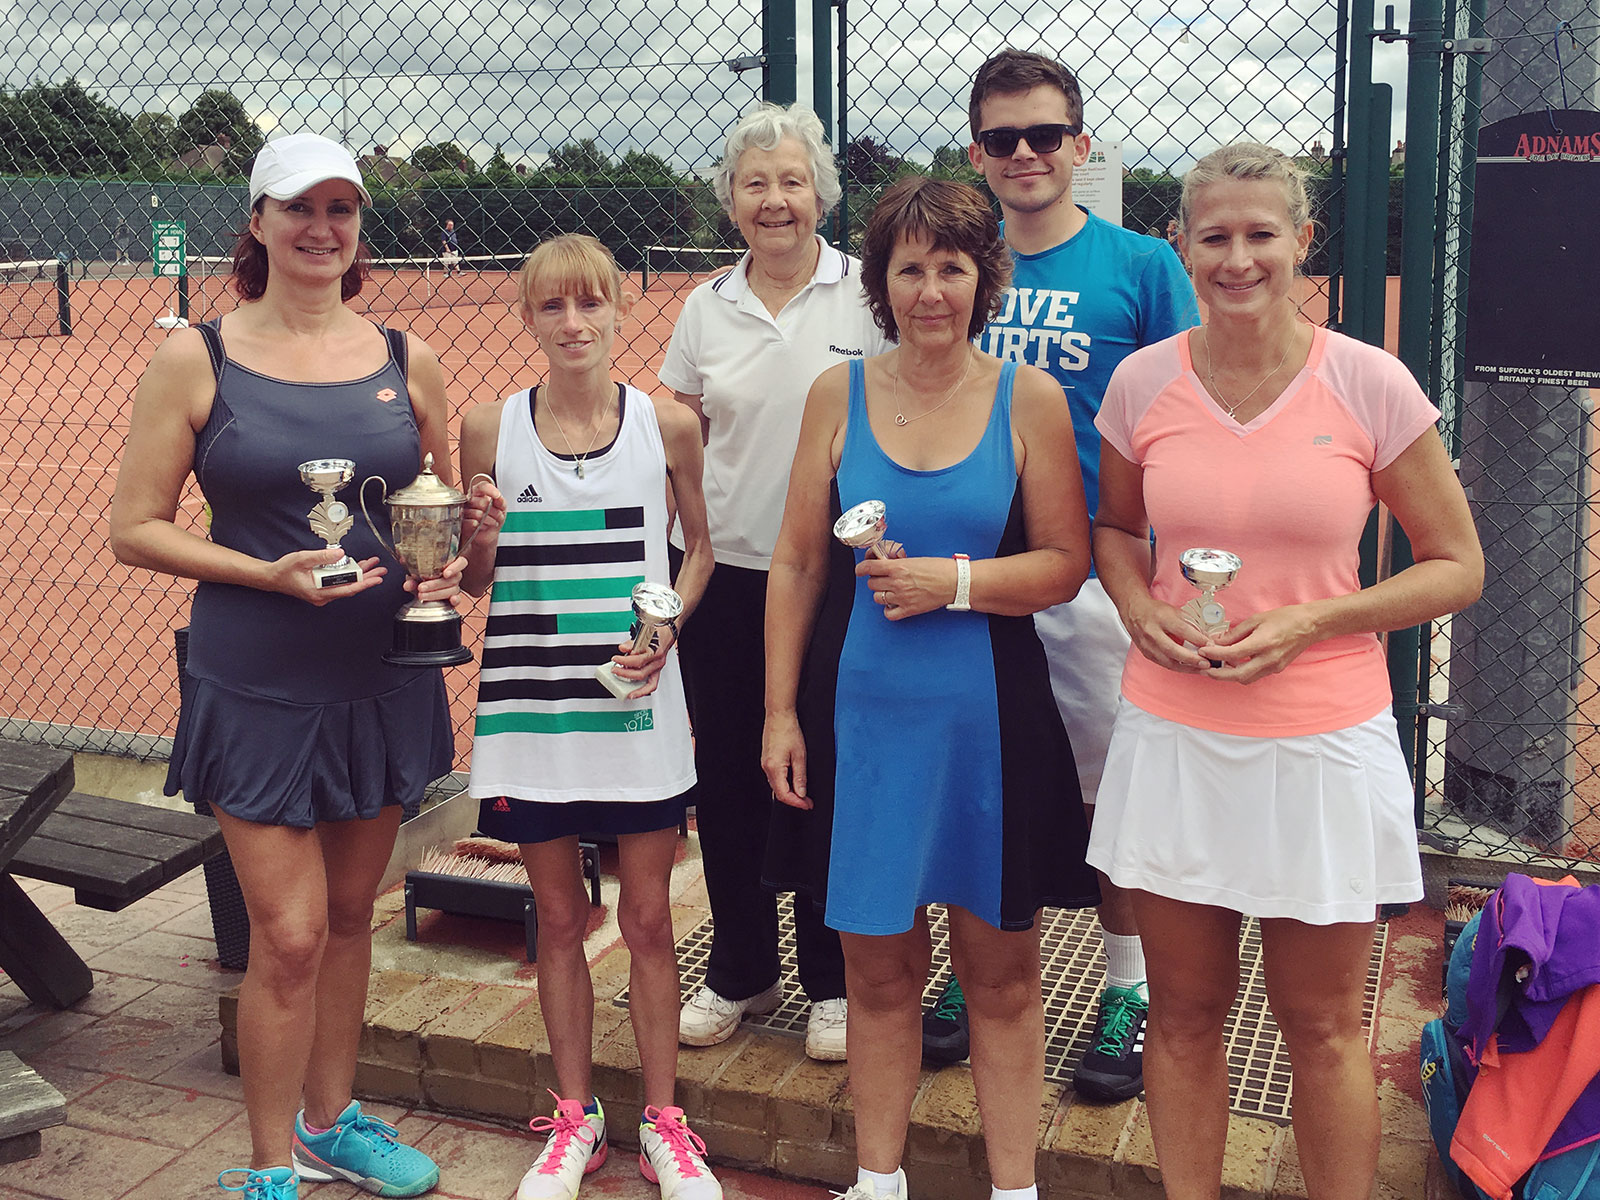 Ladies' Open Doubles Final 2017